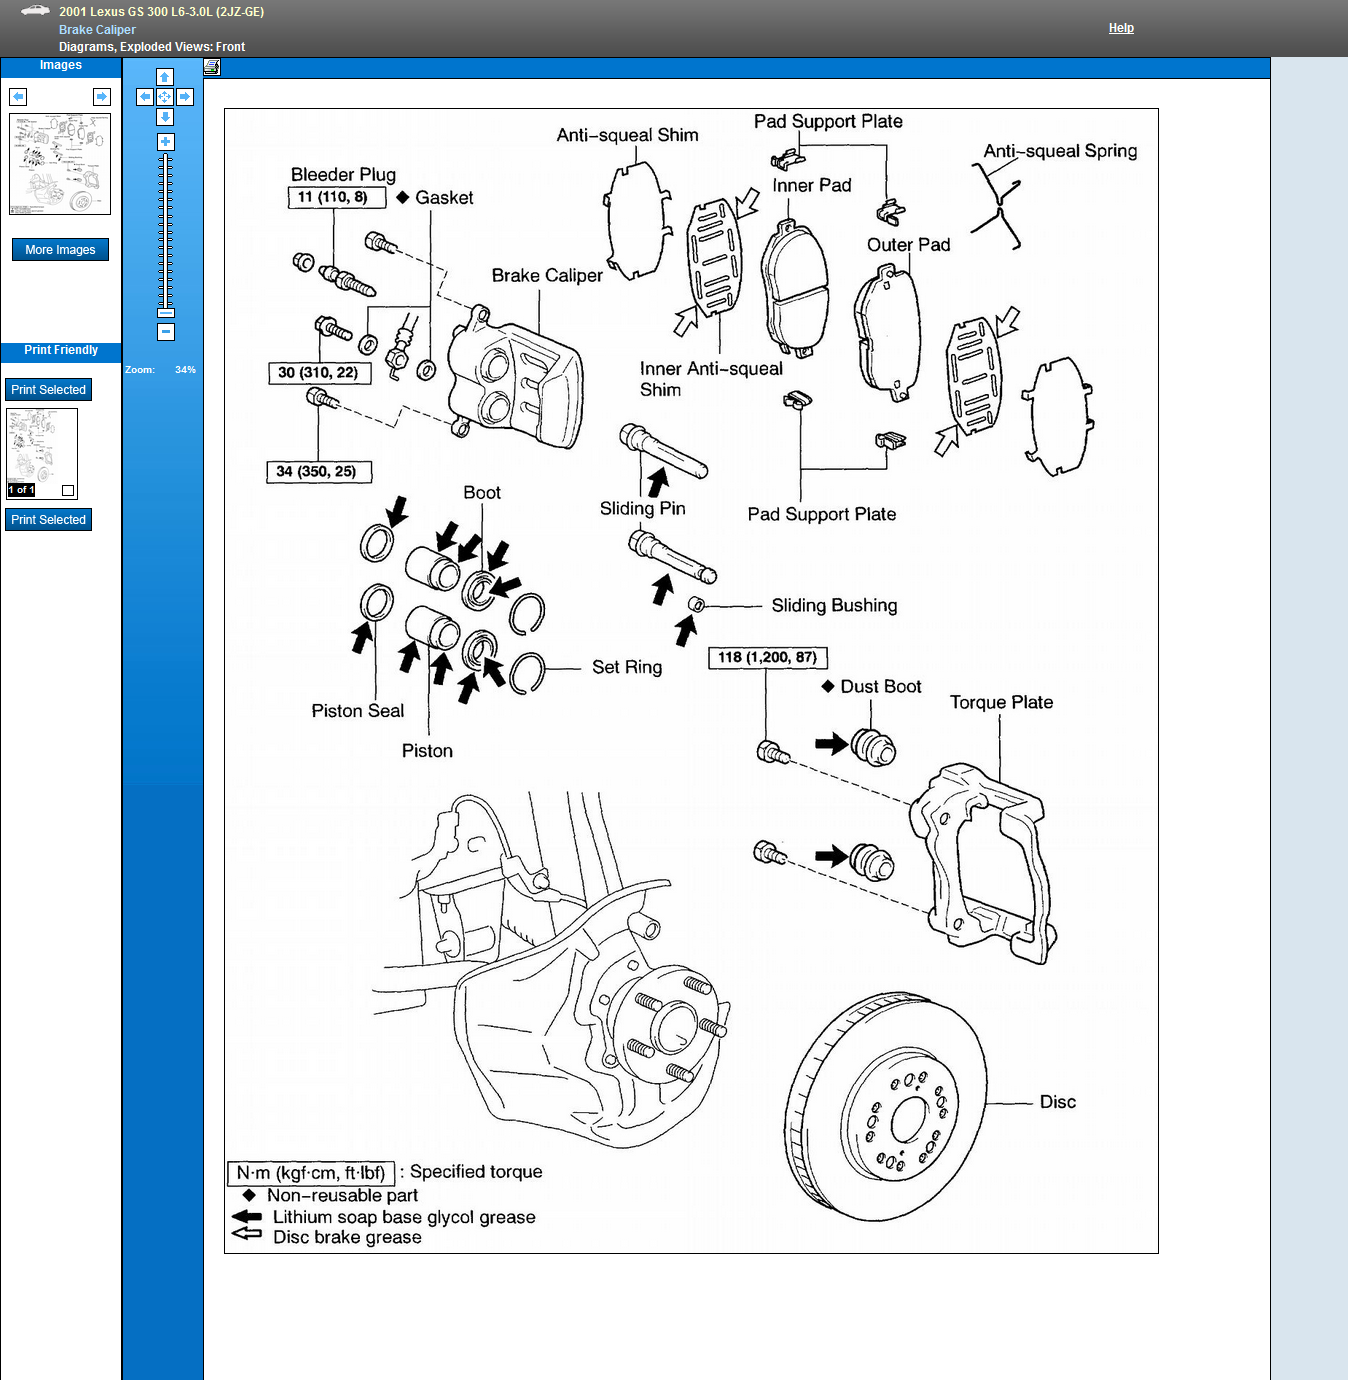 I Need The Torque Specs For Brake Caliper Mounting Bolts Diagram Ce57243d 5237 46bb Ba67 491af60990ed 2015 11 17 134852